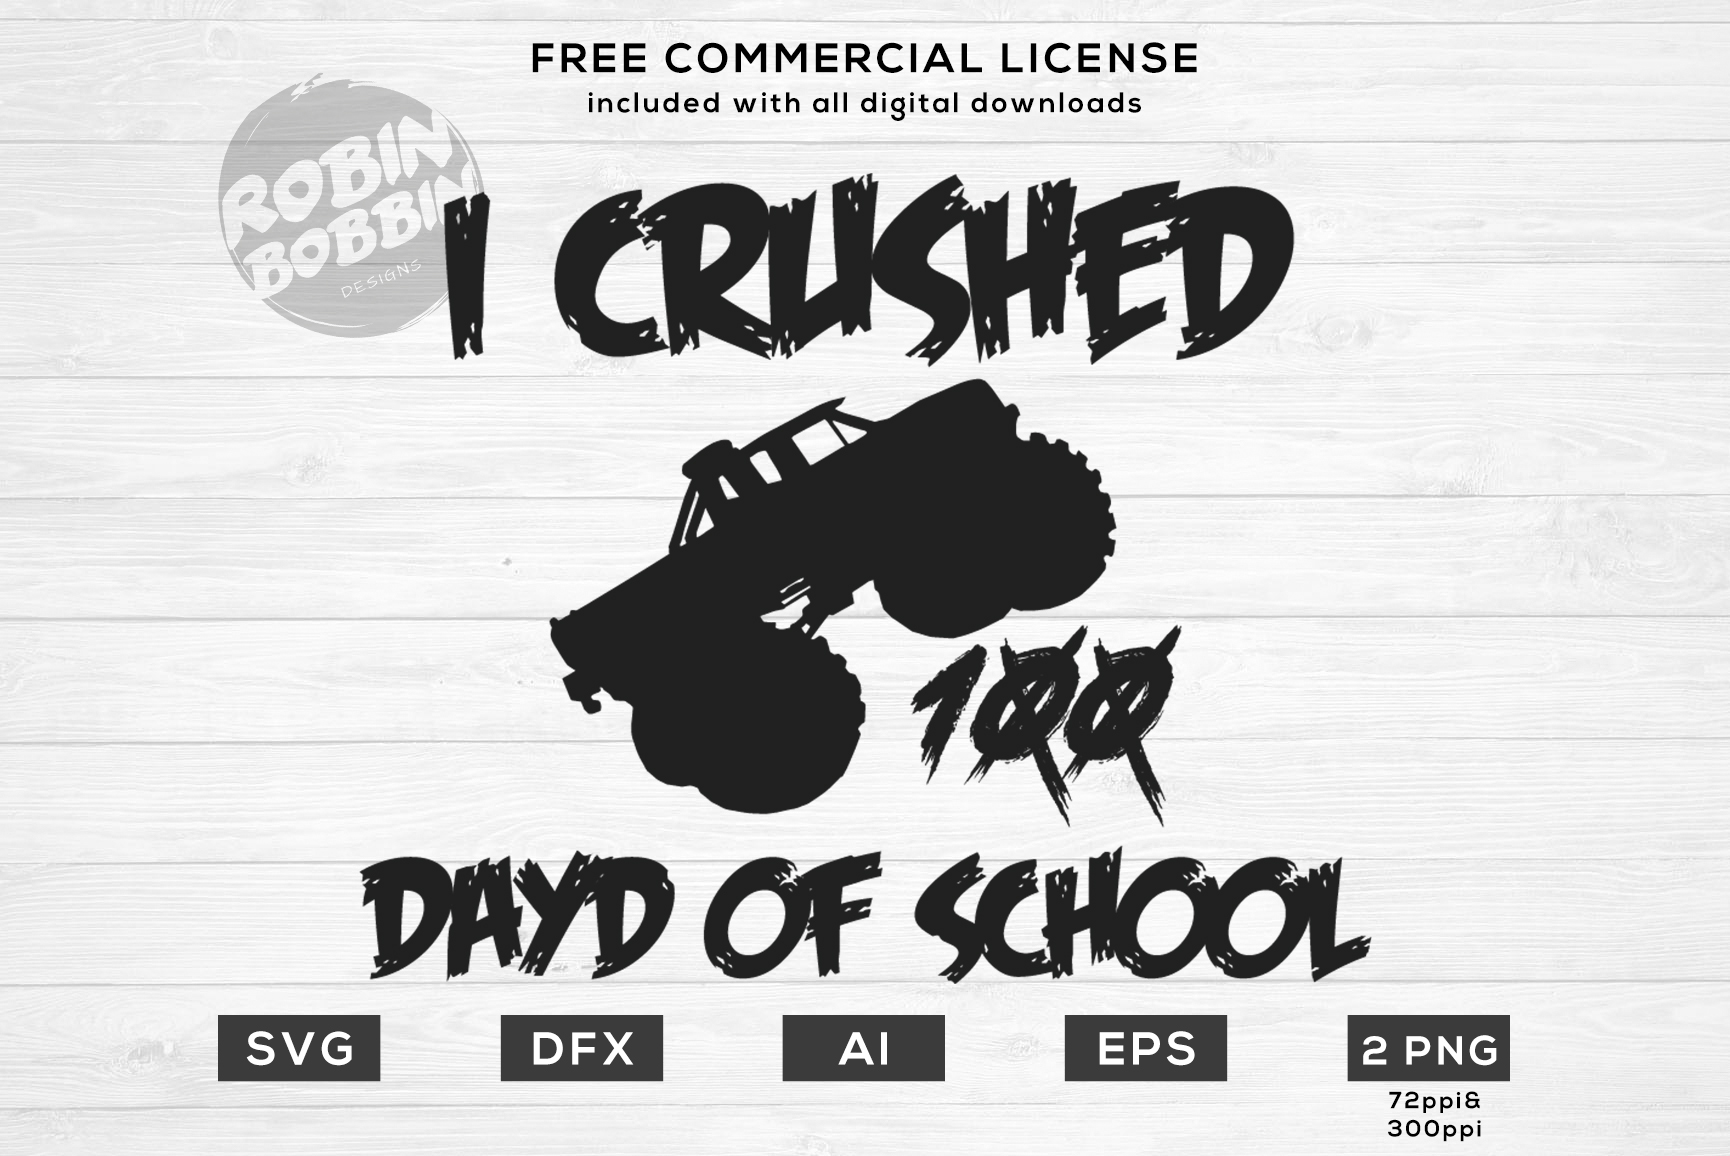 I Crushed 100 Days of School Design for T-Shirt, Hoodies example image 1